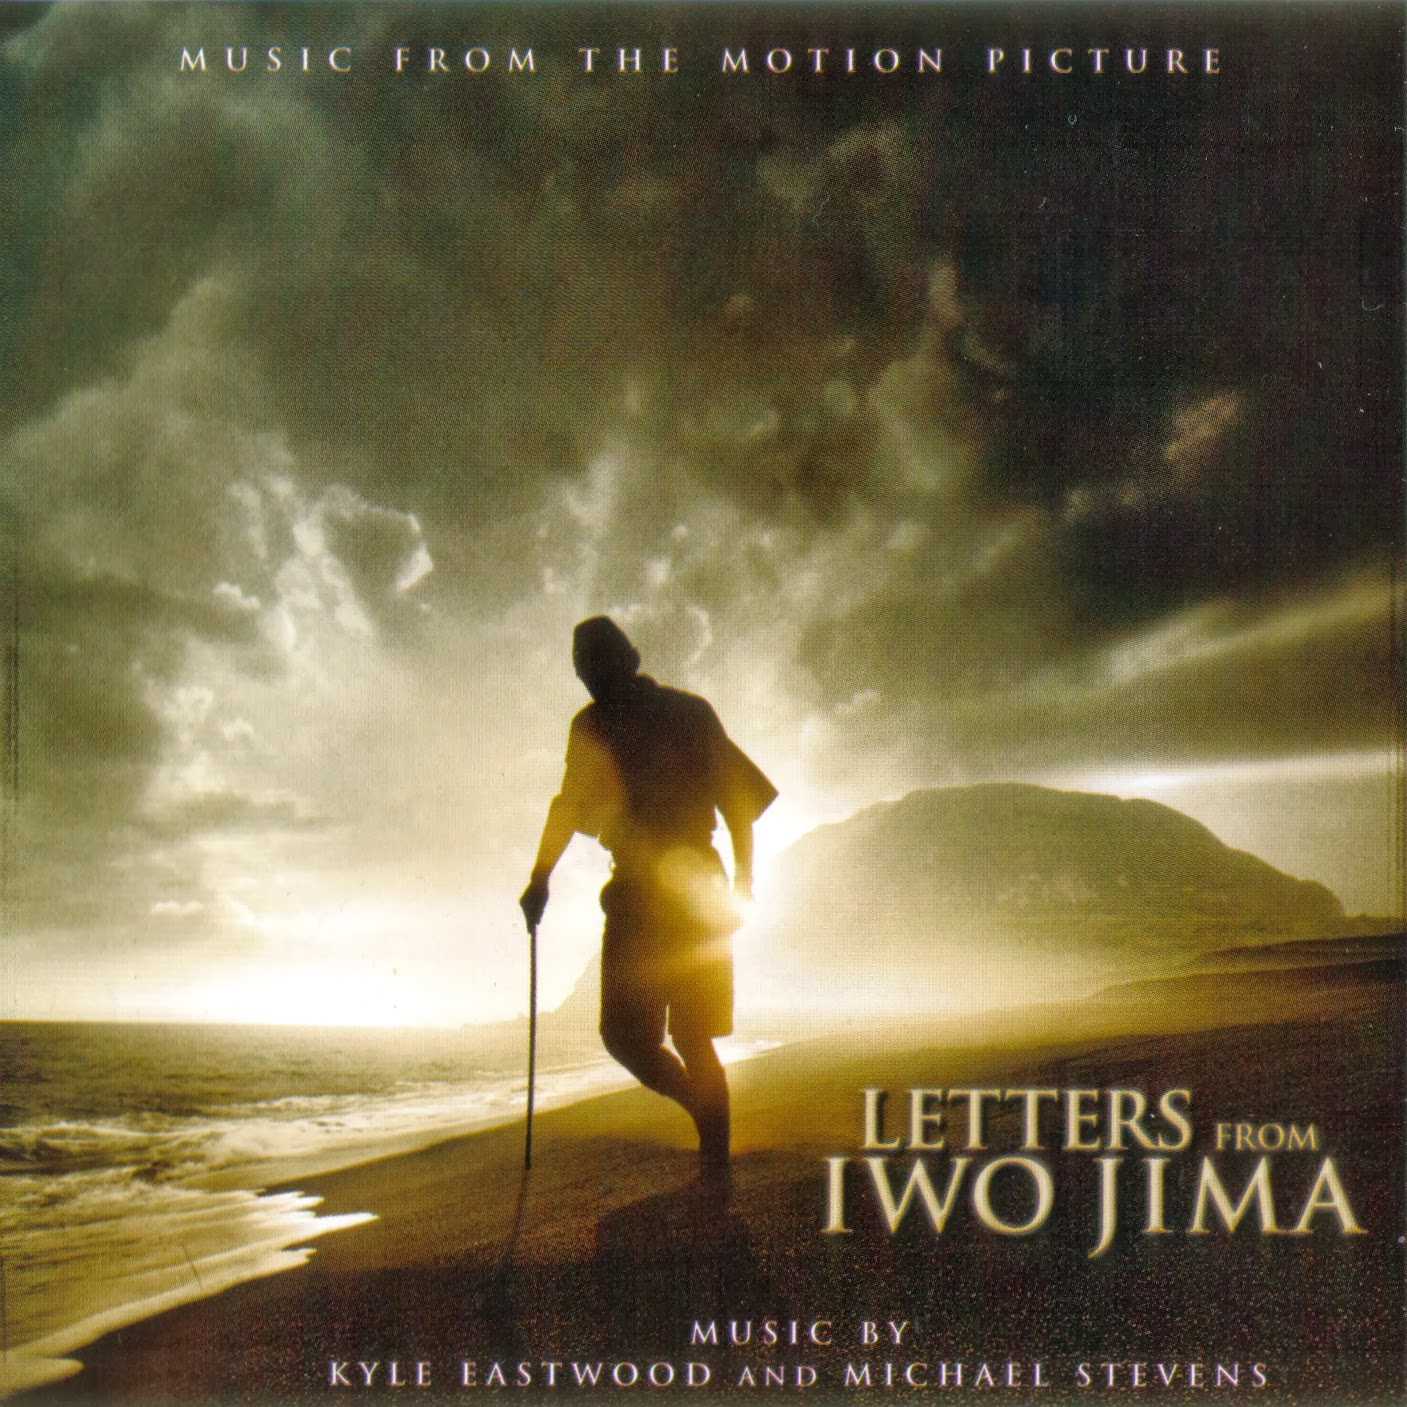 Letters From Iwo Jima 2006 Kyle Eastwood And Michael Stevens Original Soundtrack